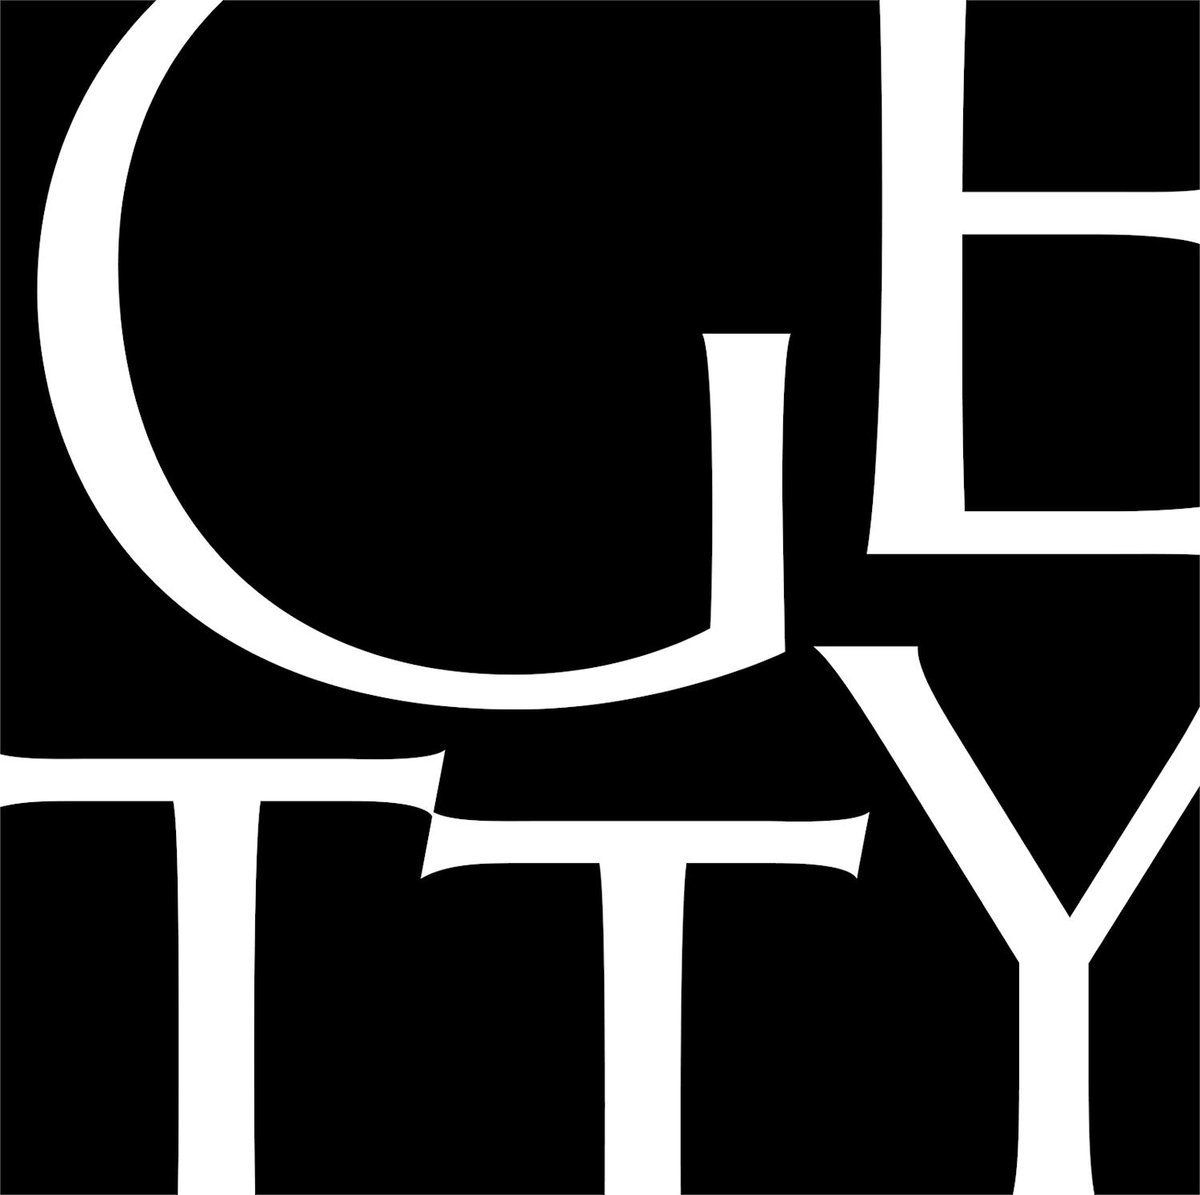 I'm thrilled to join the J. Paul Getty Trust as a member of its board of trustees and I look forward to contributing to the innovative and expansive work of such a leading global center of the arts. https://bit.ly/2JusaRO